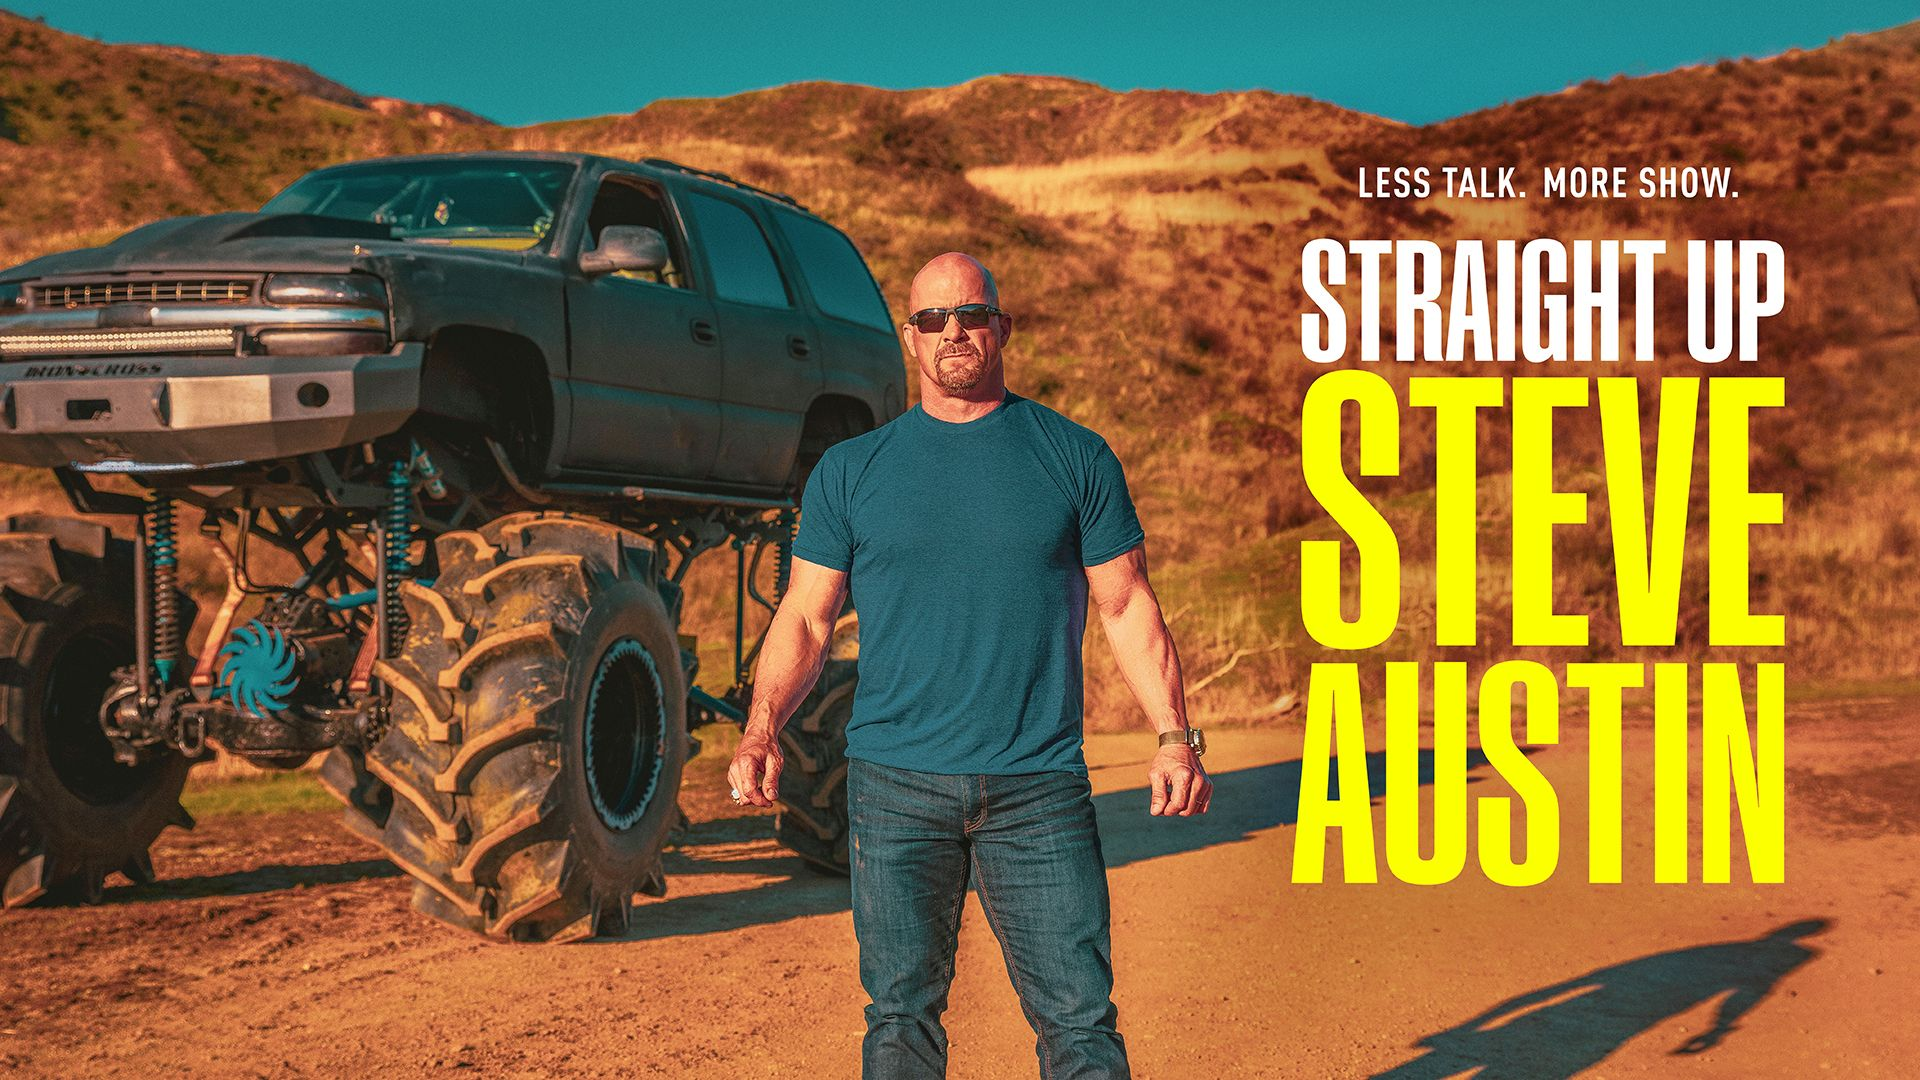 Usa Network Announced The Pickup Of Straight Up Steve Austin A Unique Interview Based Series Hosted By Retired Wwe L Steve Austin Wwe Legends Stone Cold Steve